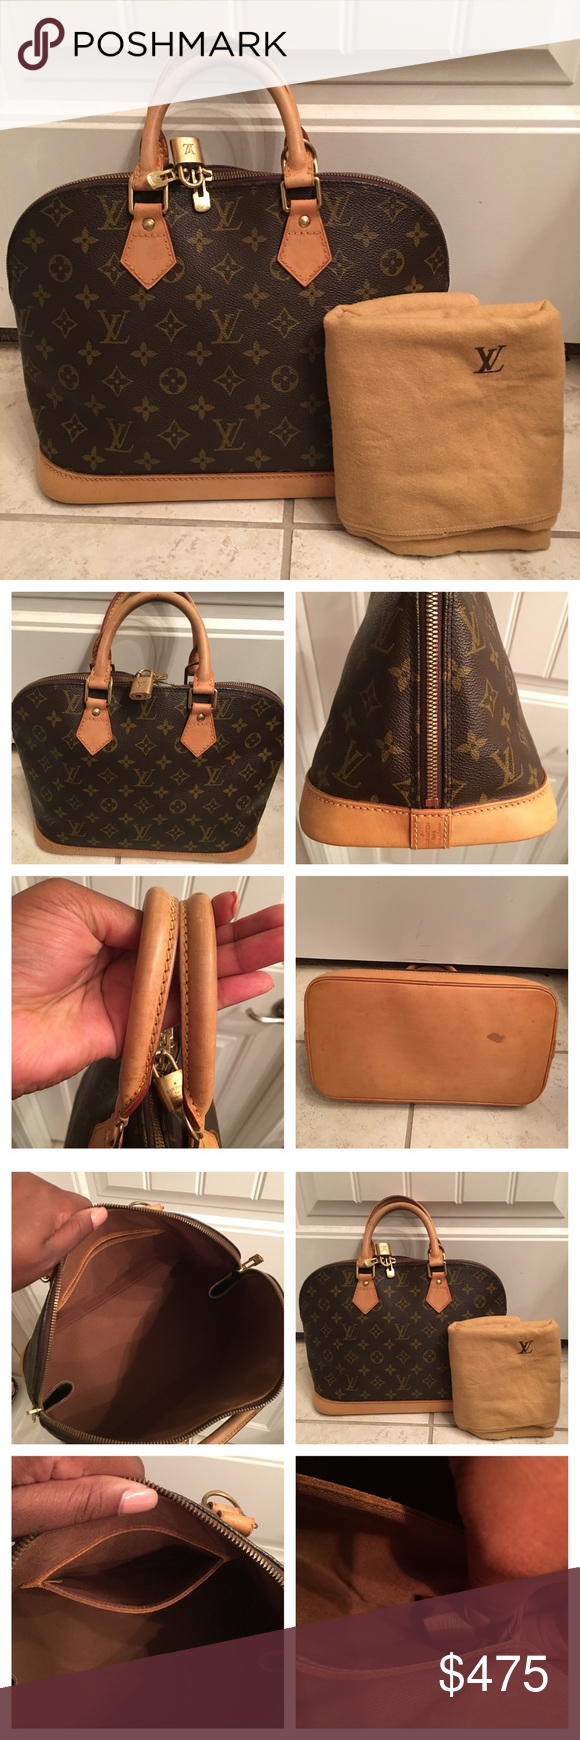 Louis Vuitton Alma PM 100% Authentic. Date code: TH1926  This bag is in great condition!  Comes with lock, no key and dust bag.  Inside has no stains and is in perfect condition.  Zippers work fine. Outside canvas in excellent condition.  Straps are in great condition as well with no stains. One stain on the bottom of the bag as shown in the pic. Louis Vuitton Bags Totes